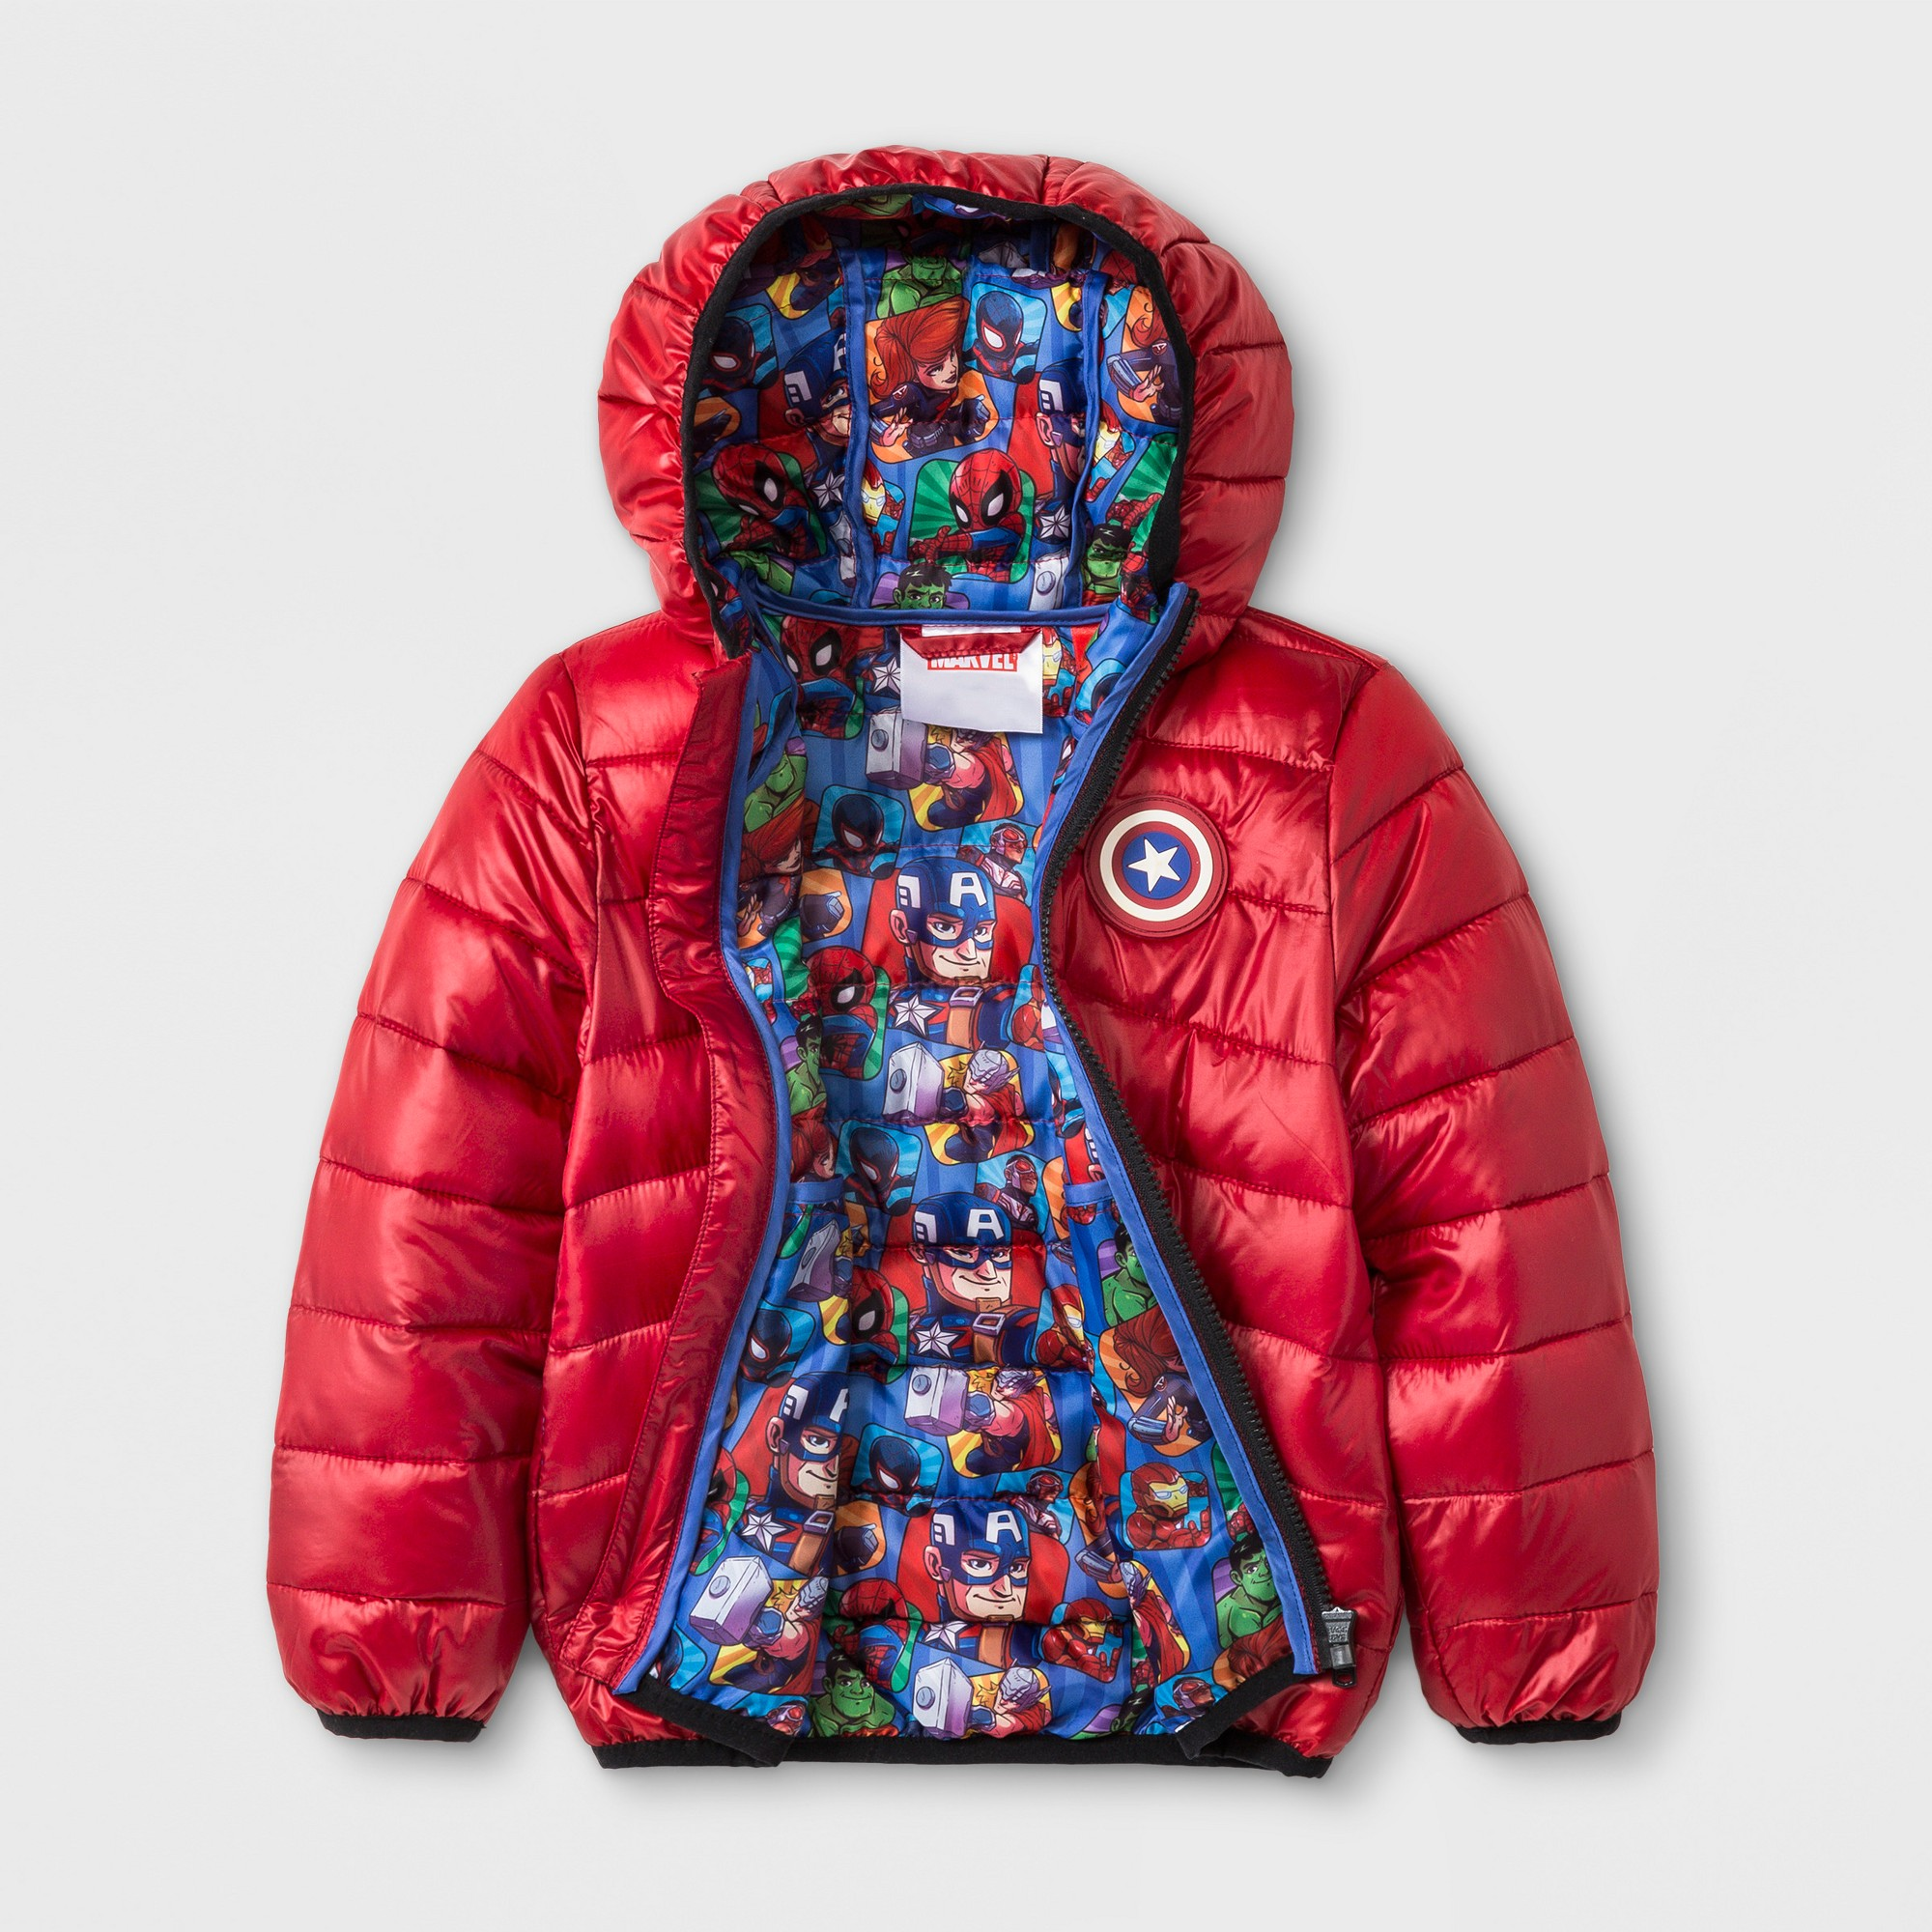 Toddler Boys Marvel Avengers Hooded Quilted Jacket Red 12m Red Jacket Quilted Jacket Toddler Boy Coats [ 2000 x 2000 Pixel ]